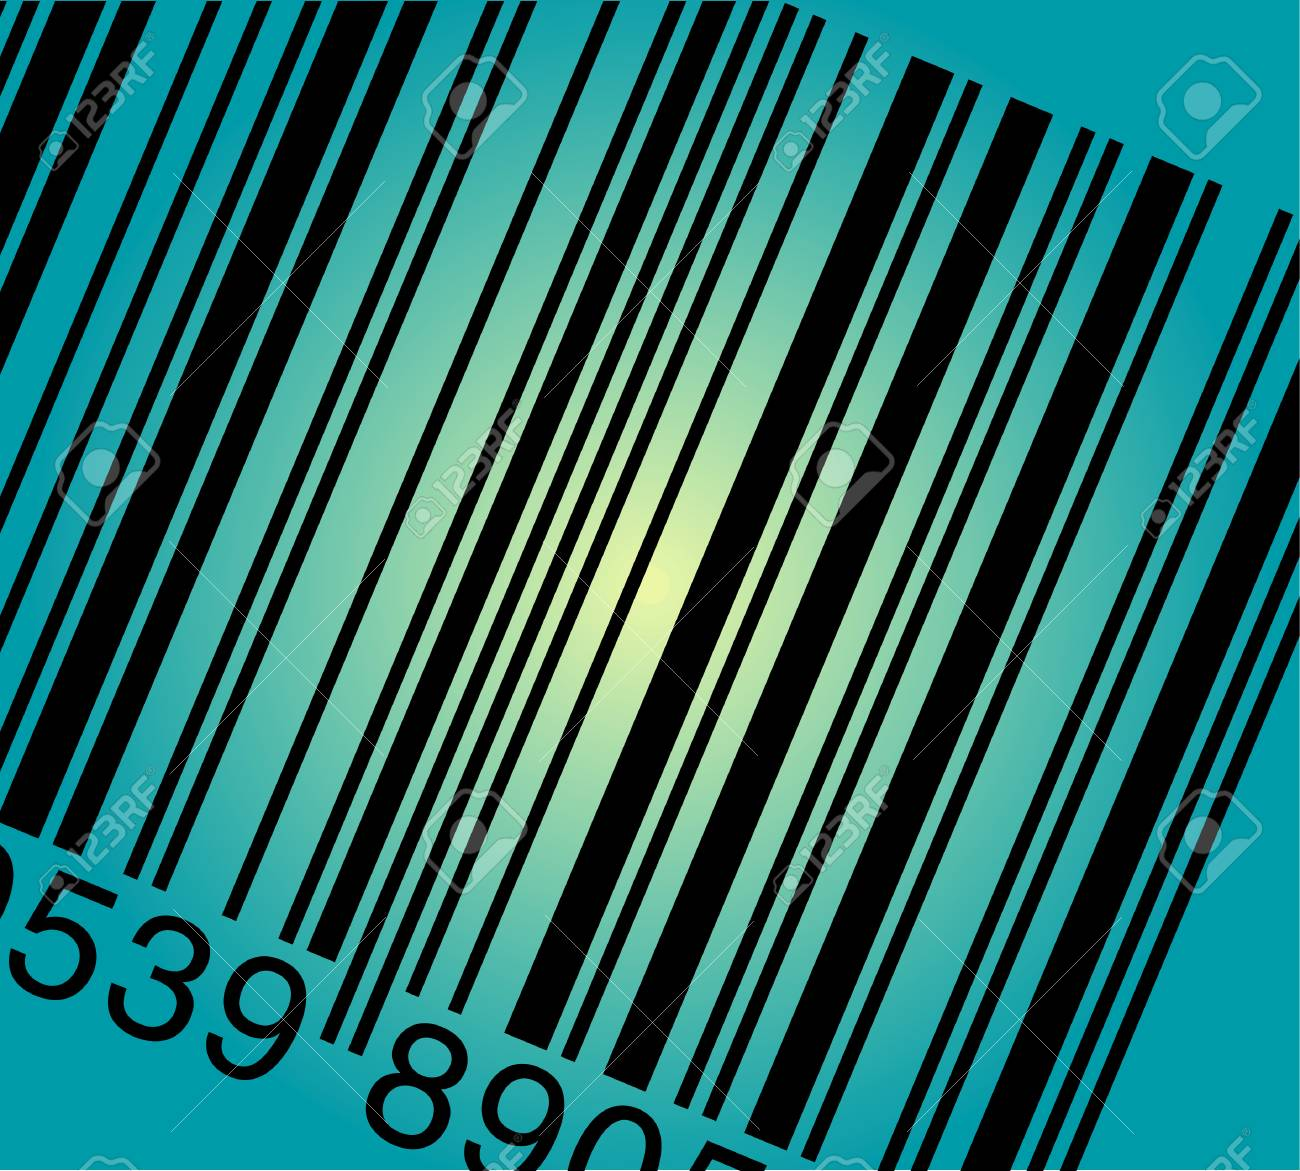 vector illustraton of the scanned bar code Stock Vector - 2978803